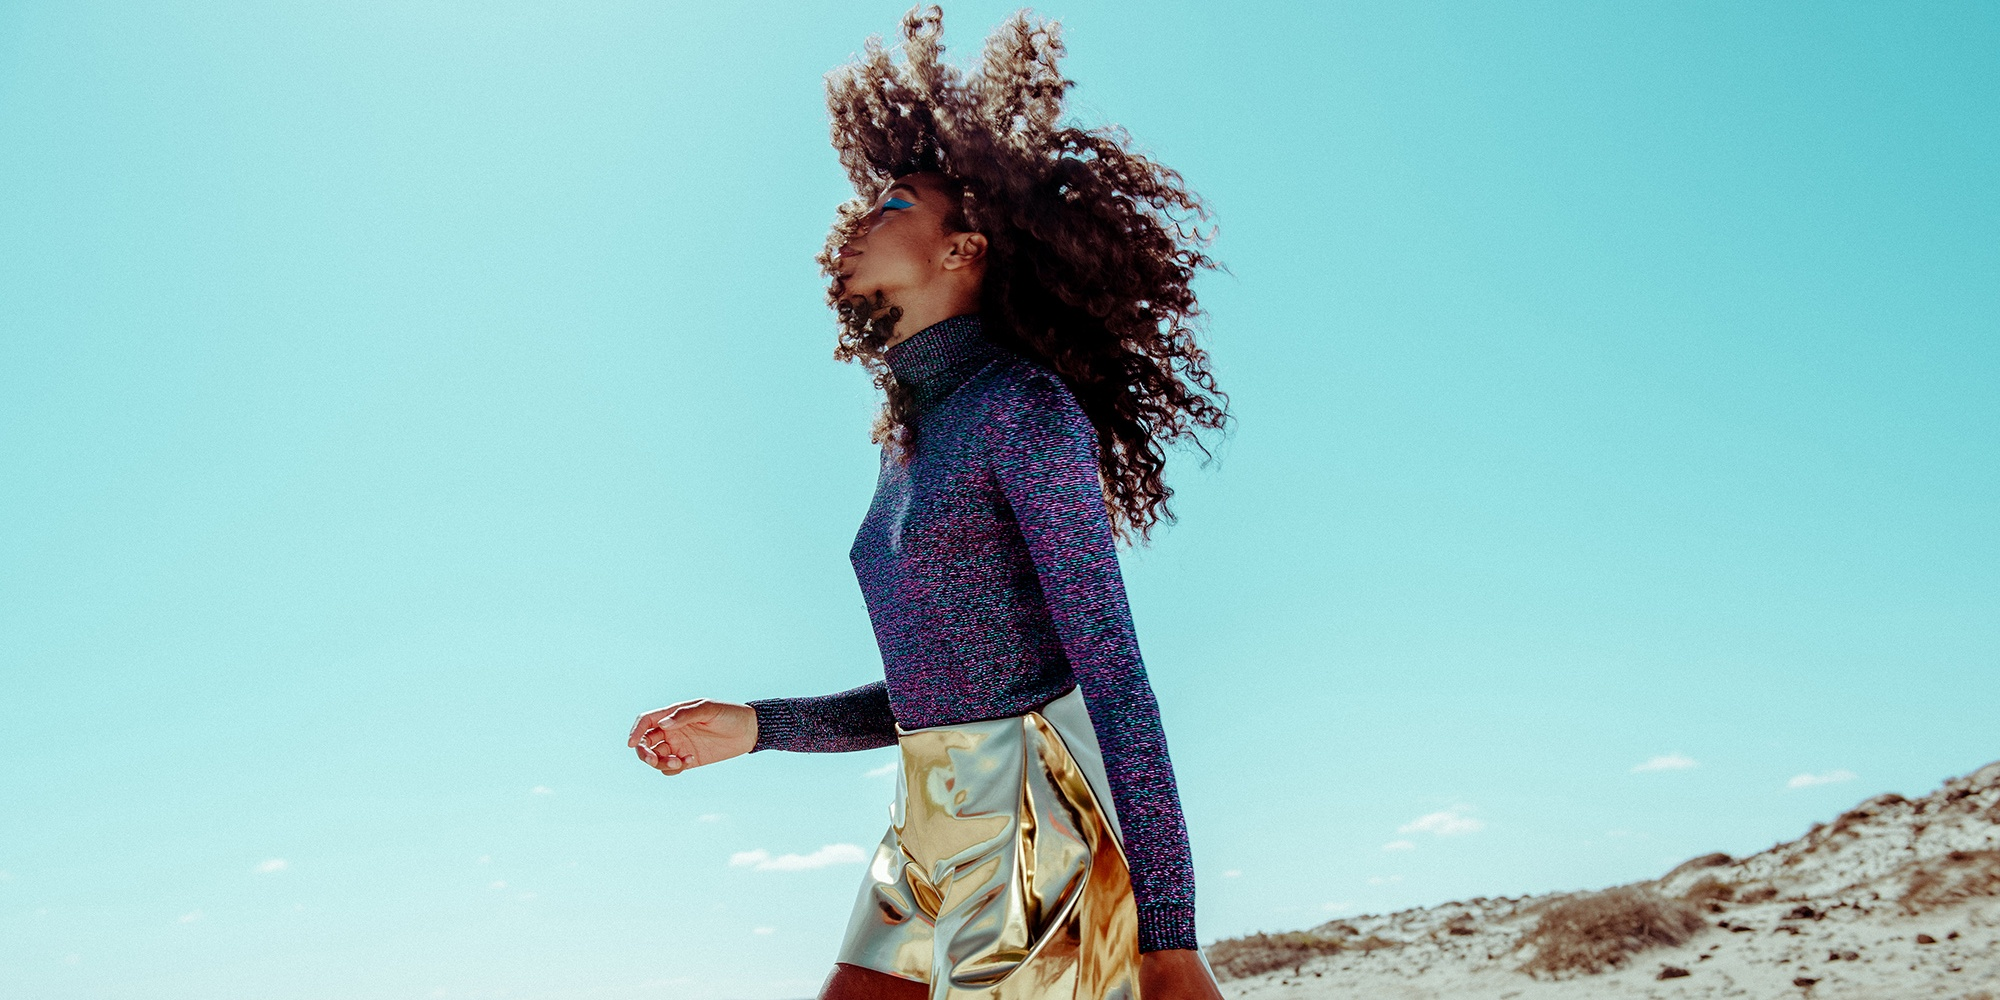 On The Record: The albums that shaped Corinne Bailey Rae